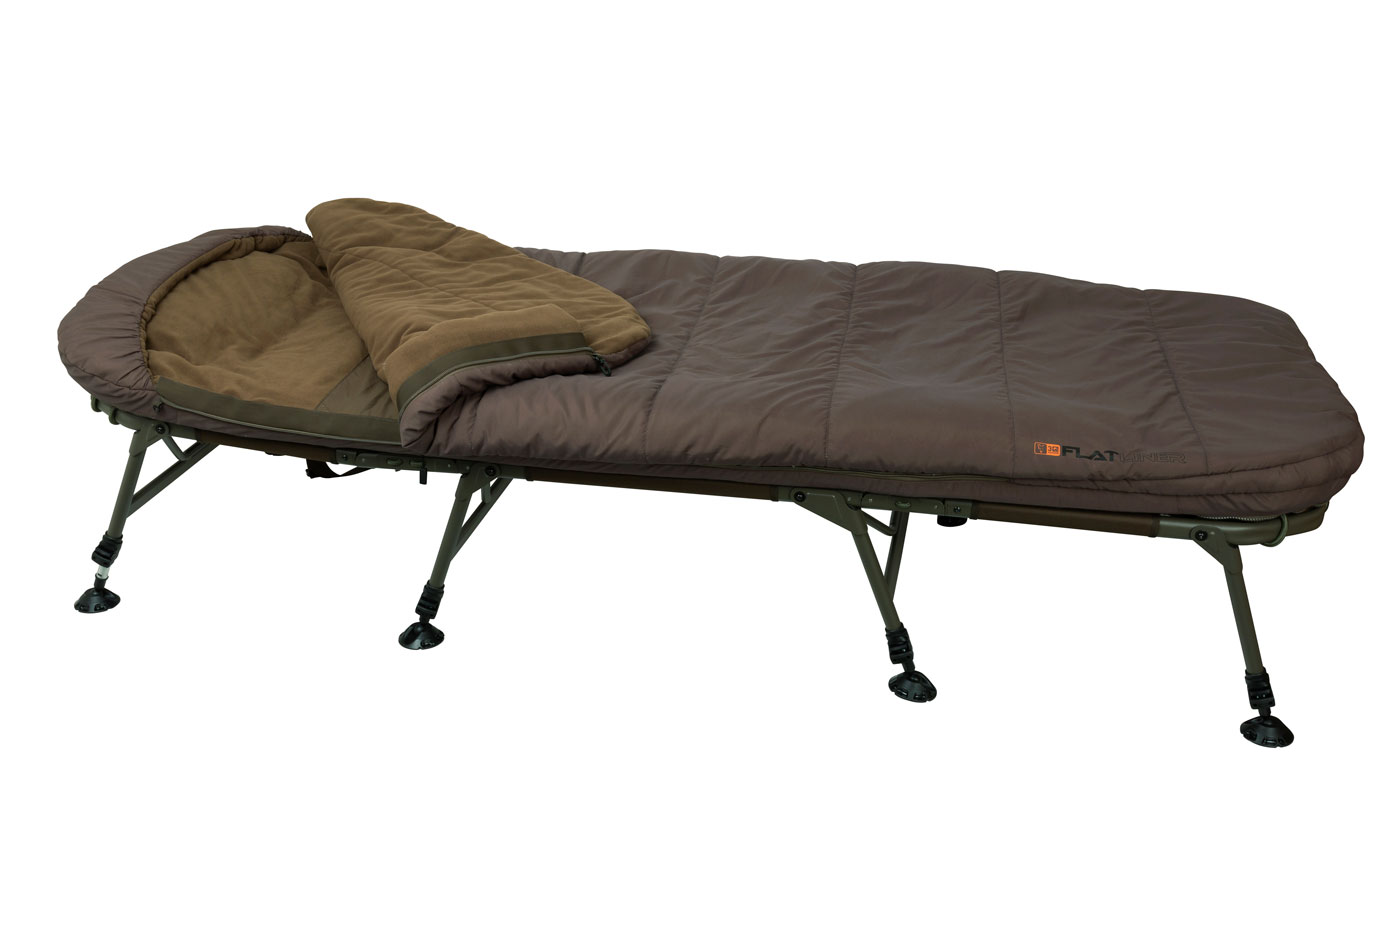 FLATLINER 8 LEG 3 SEASON SLEEP SYSTEM